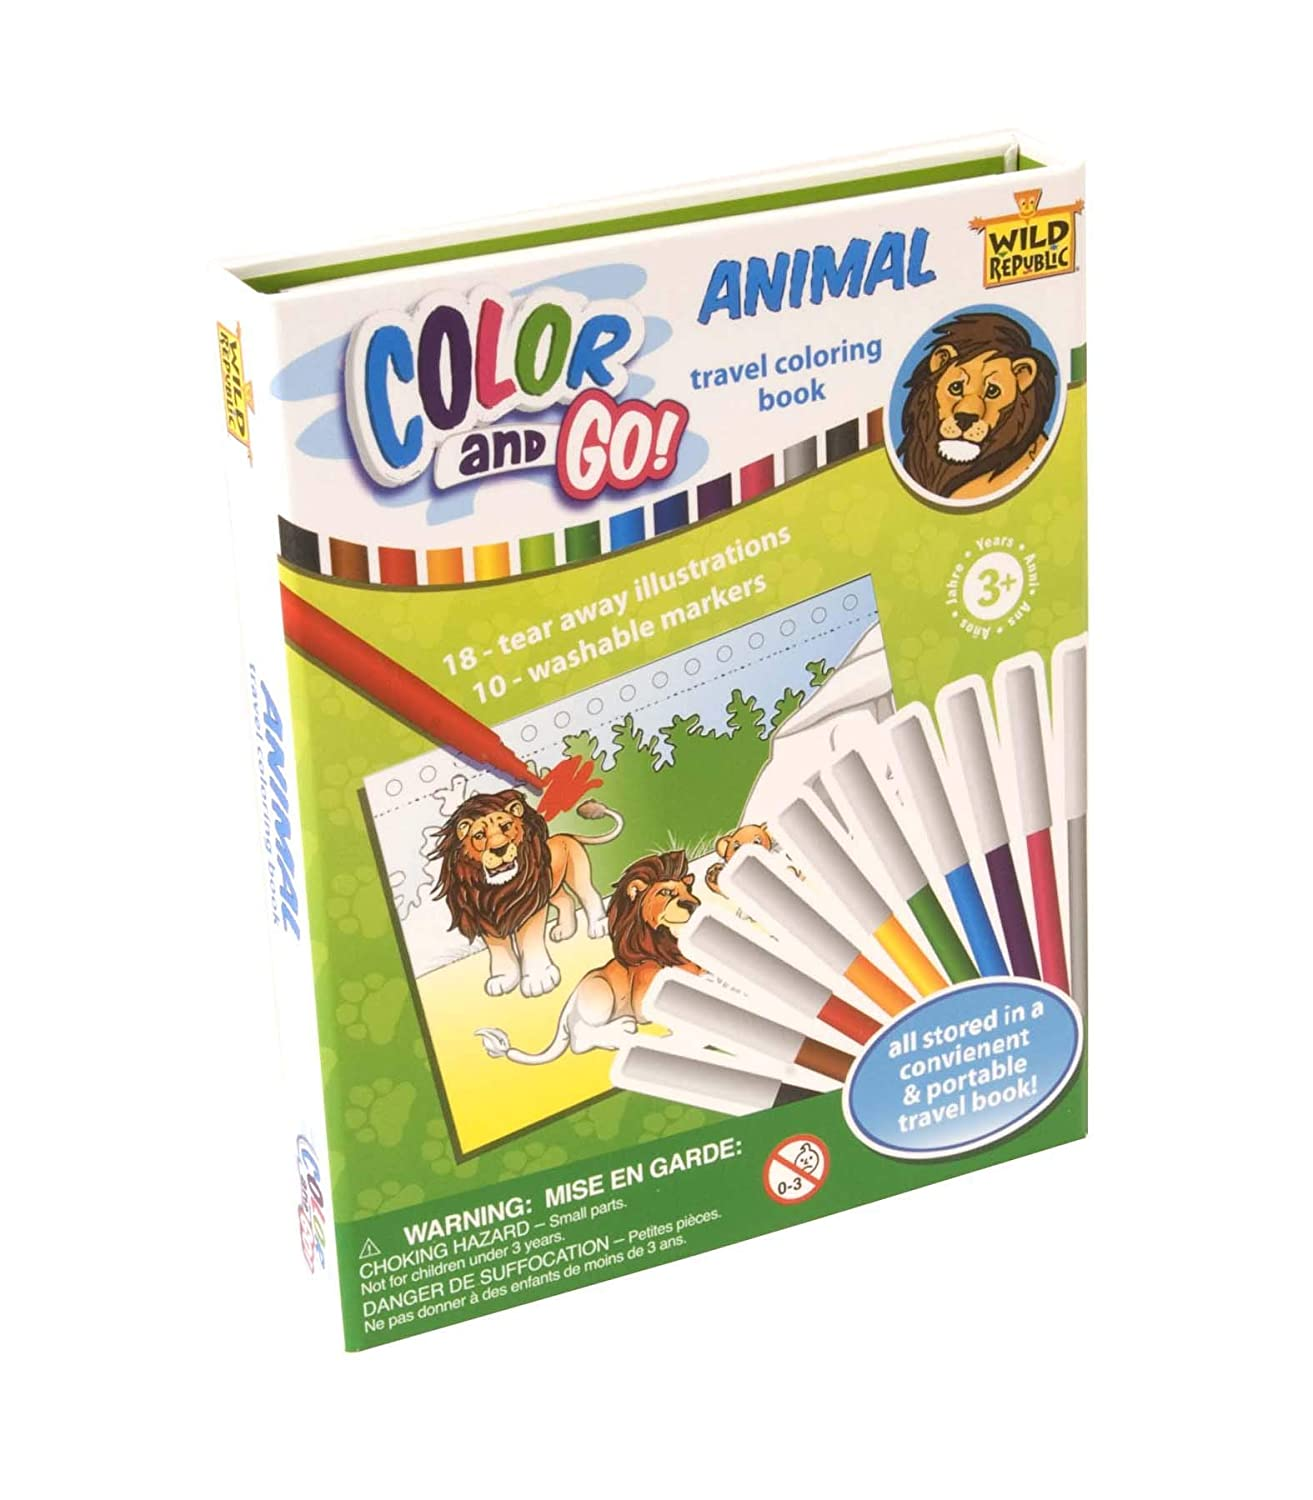 Stem Activities 18 Pages Color /& Go Wild Republic Dinosaur Coloring Books For Toddlers